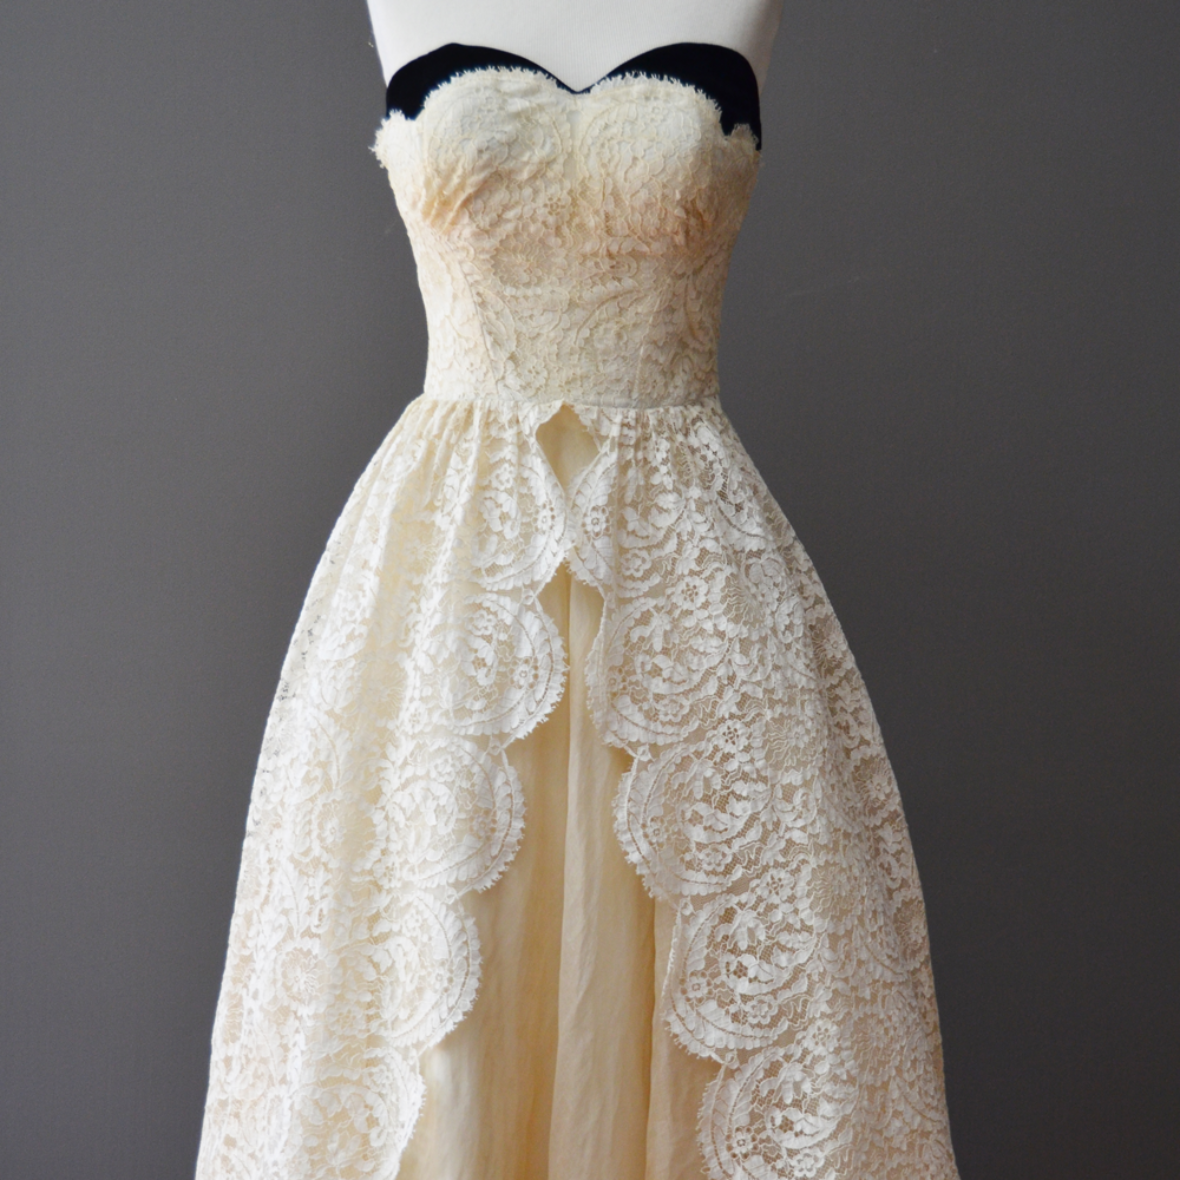 1950's Cream Lace Vintage Dress